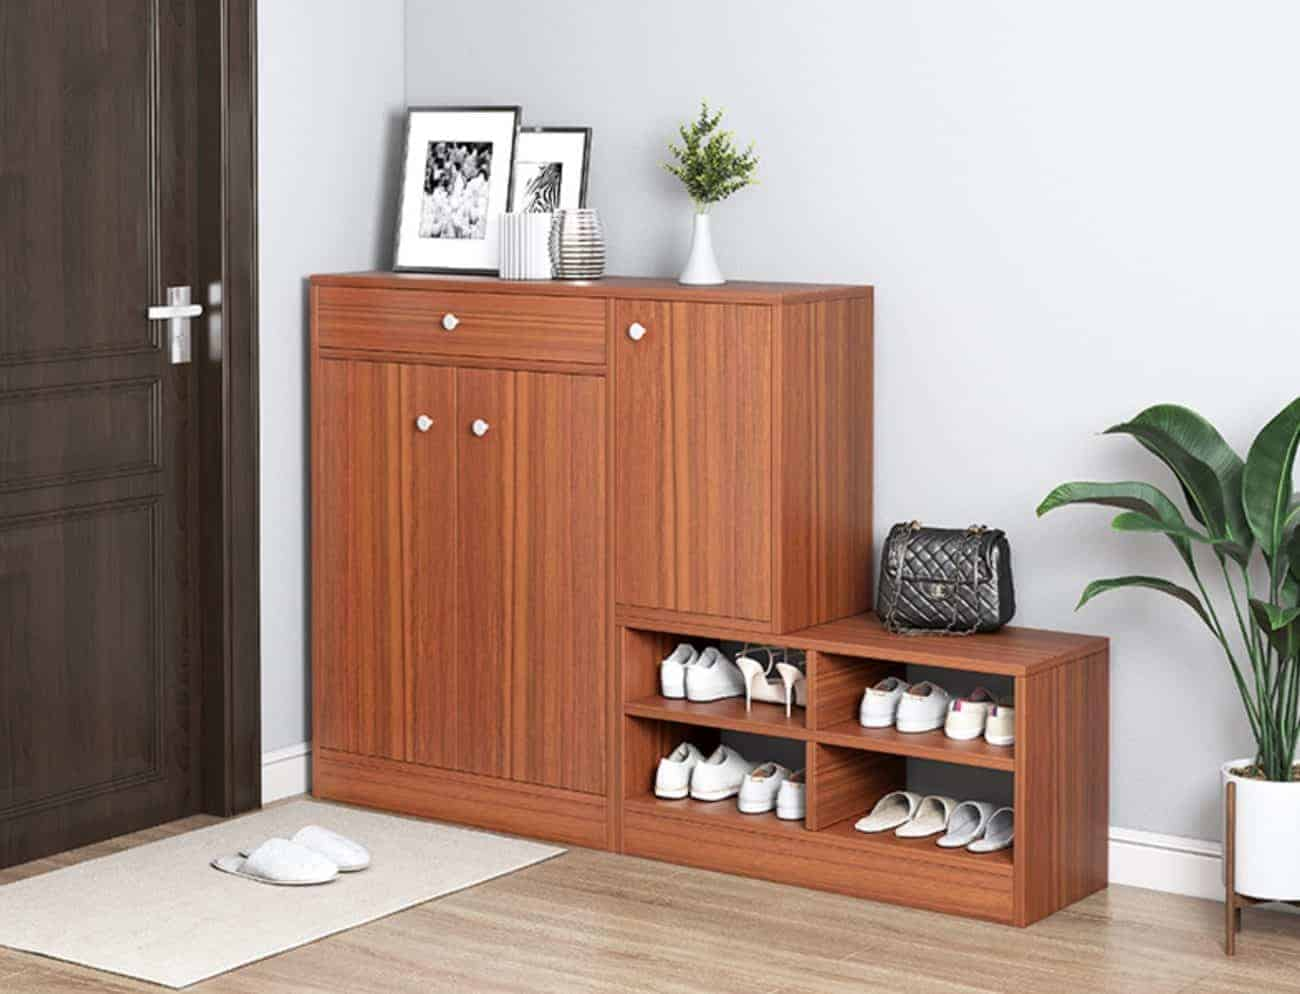 How to Choose the Best Shoe Storage Cabinet